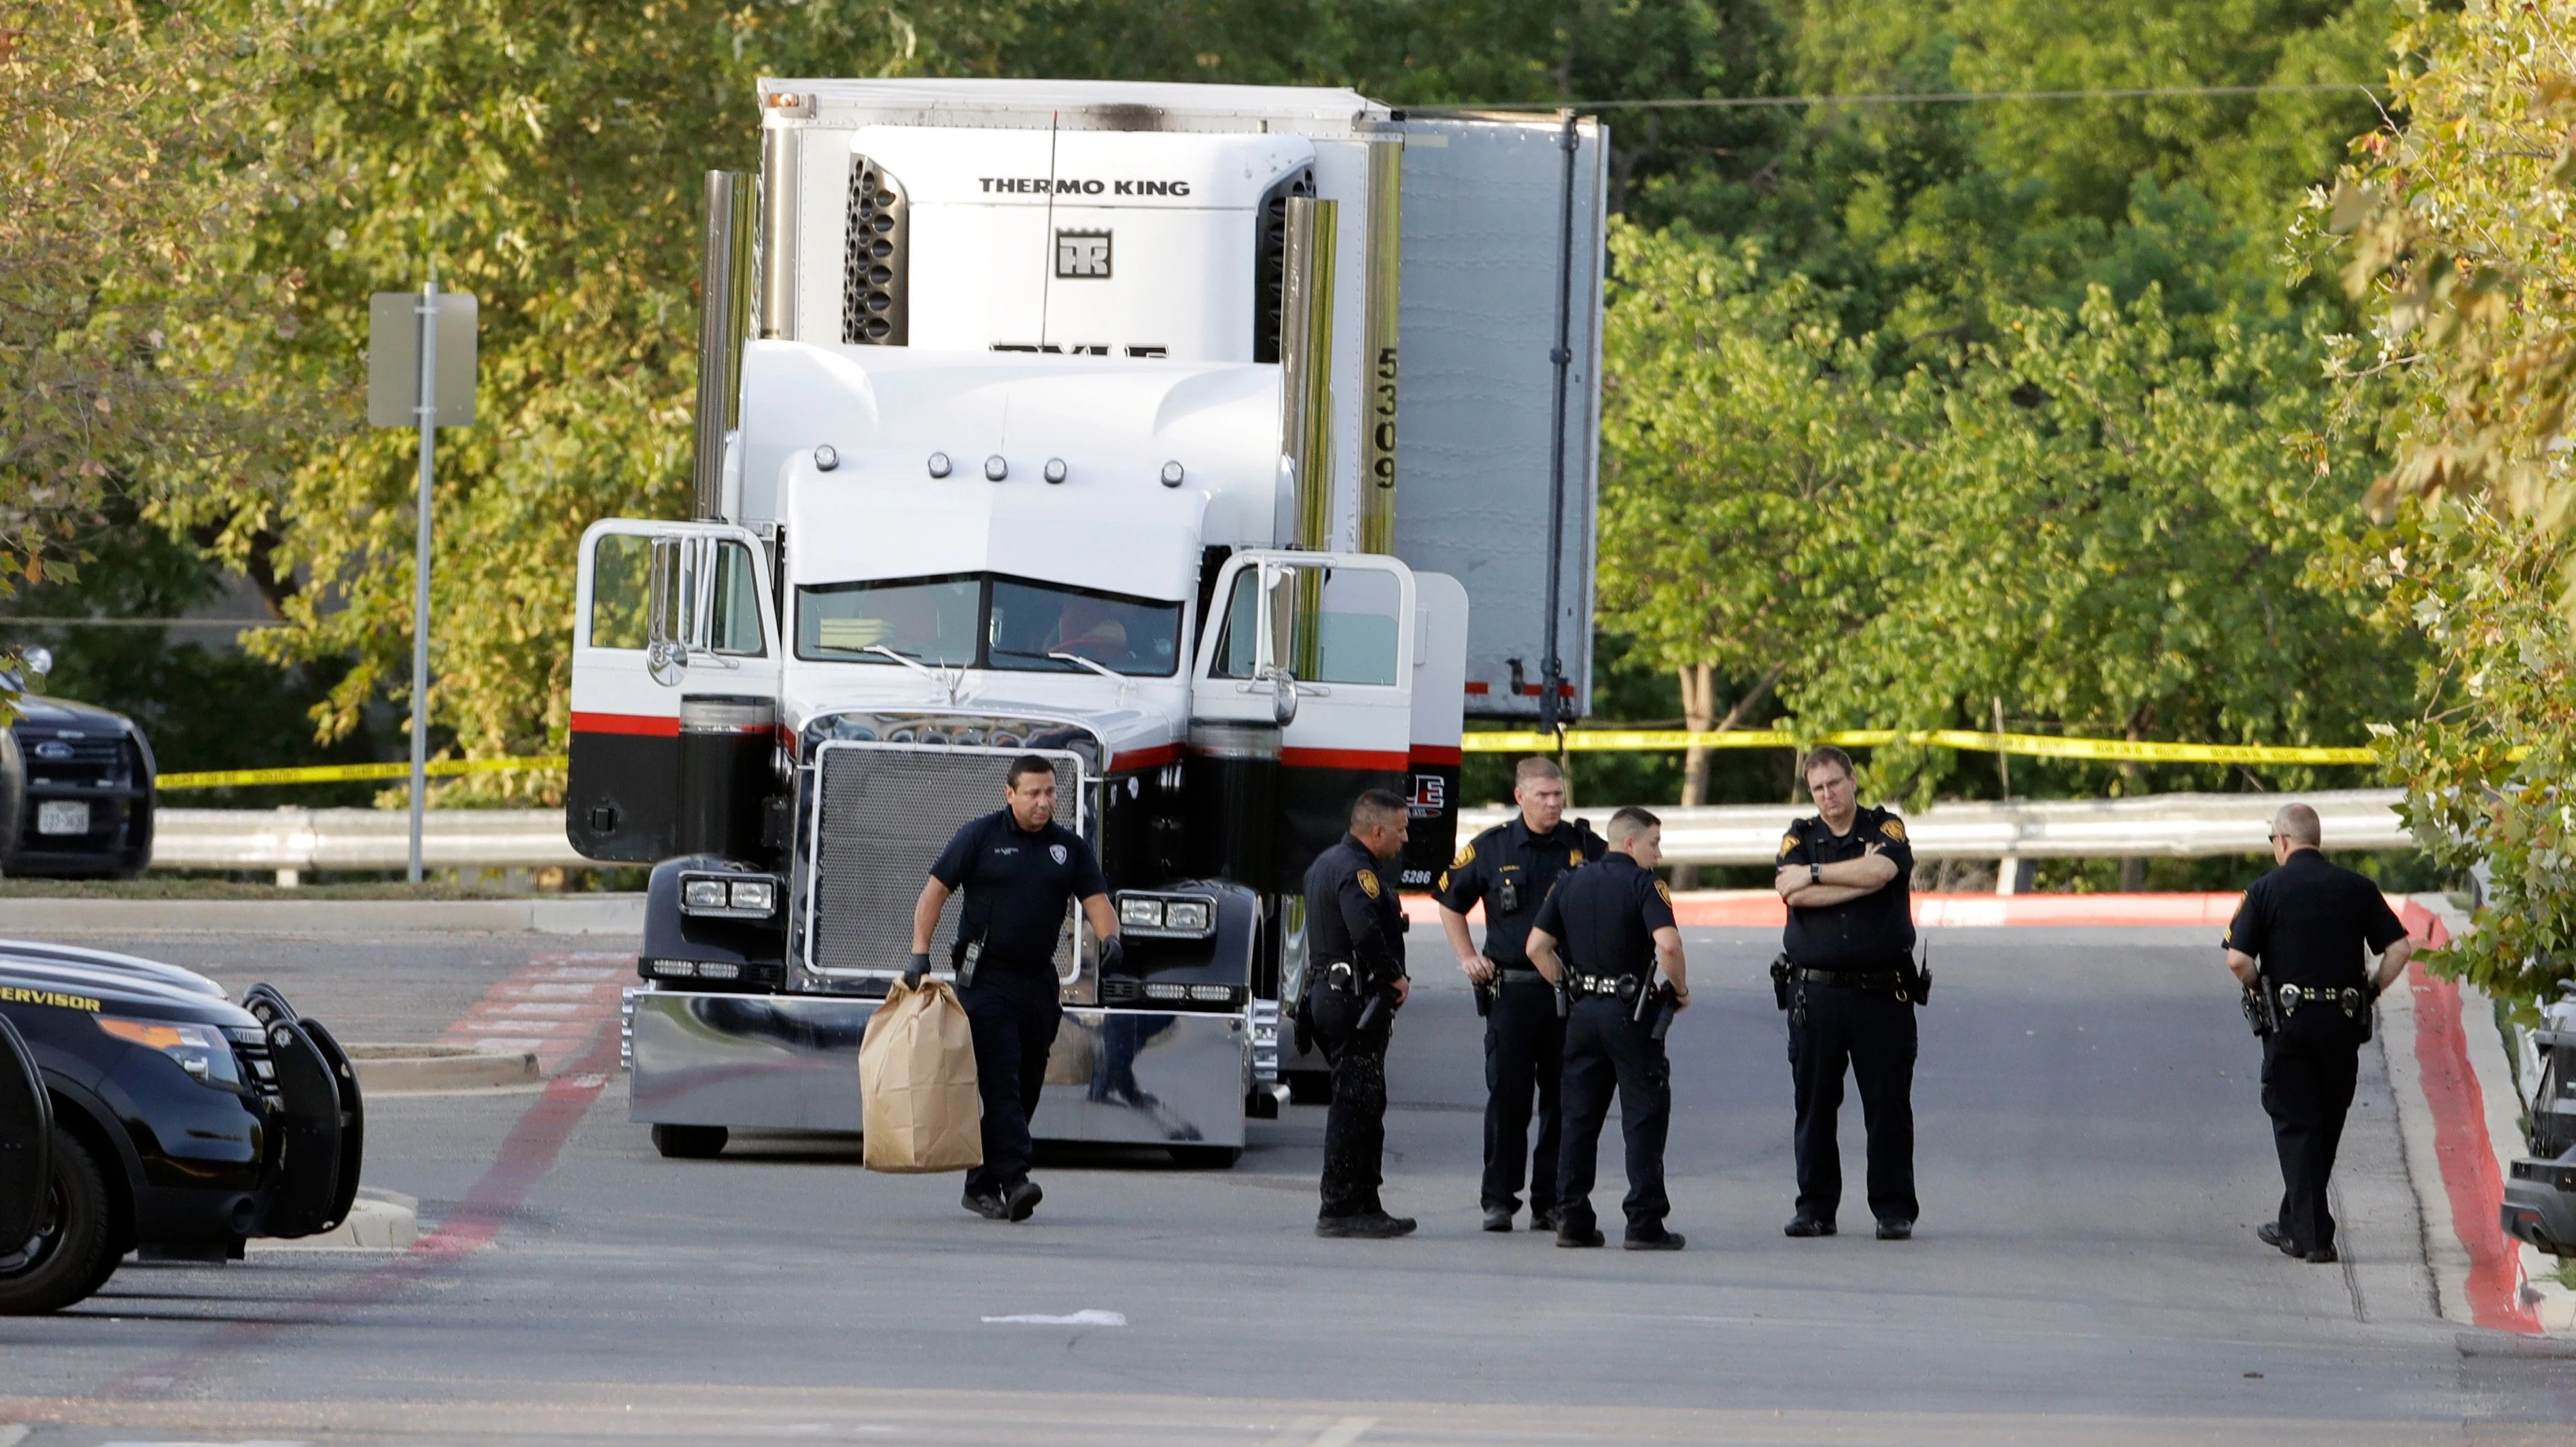 Iowa trucking company that owned the trailer used in a high-profile human trafficking case in which 10 immigrants died